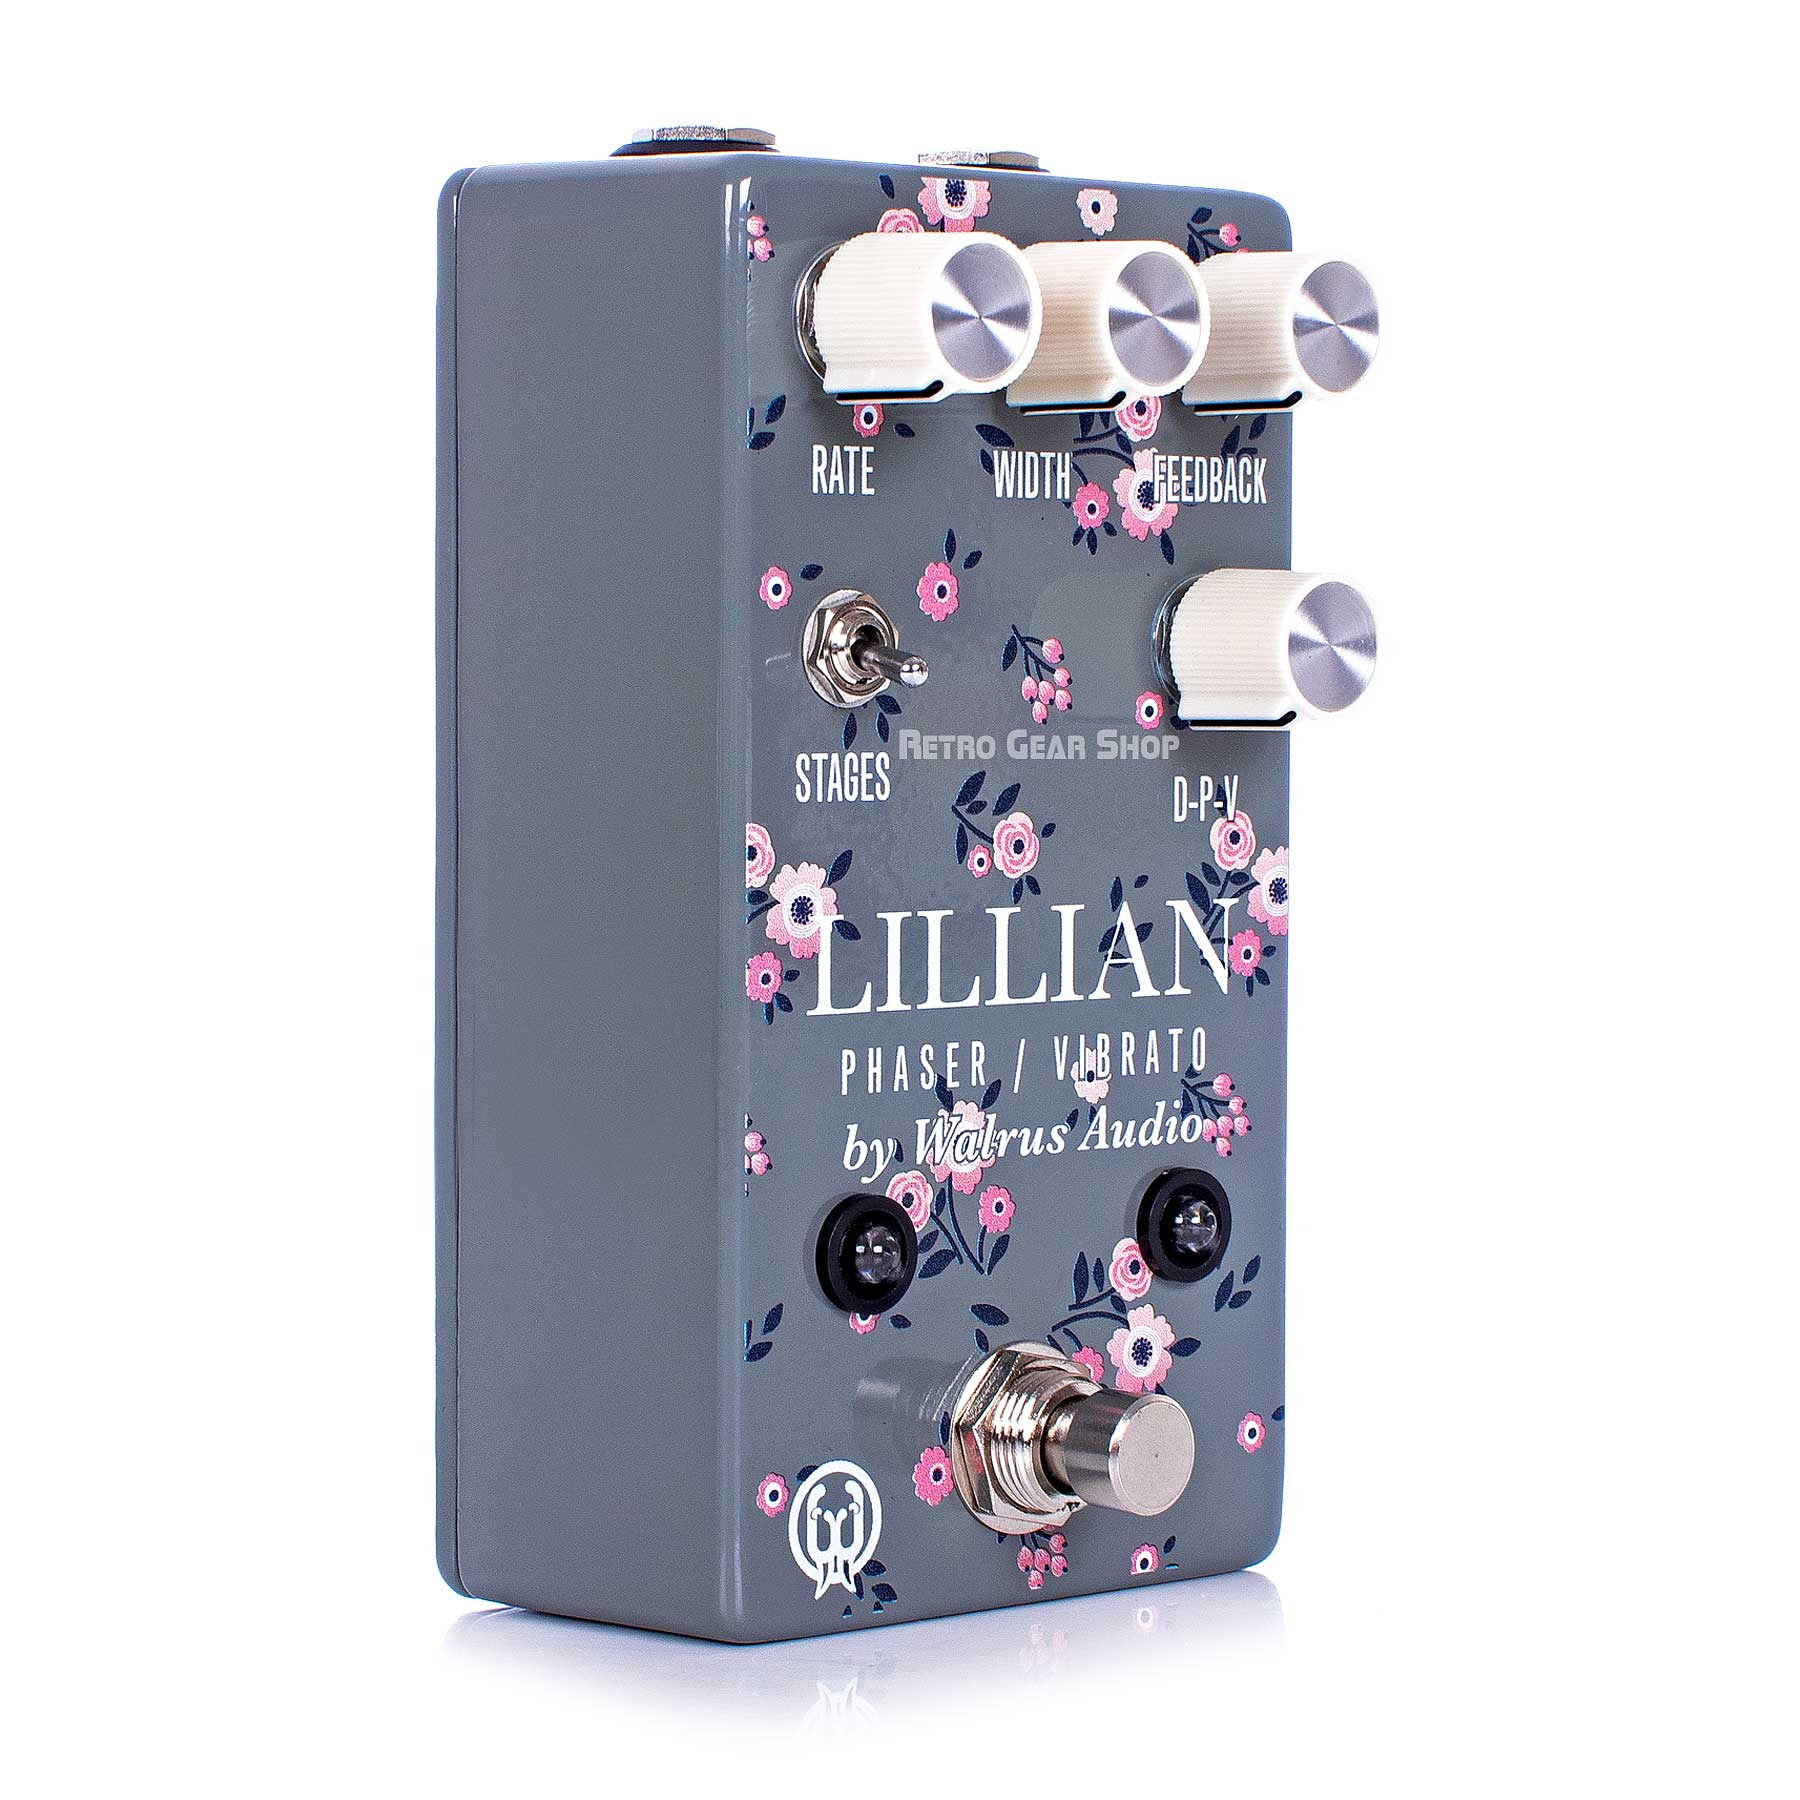 Walrus Audio Lillian Limited Edition Floral Series Multi-Stage Analog Phaser Guitar Effect Pedal